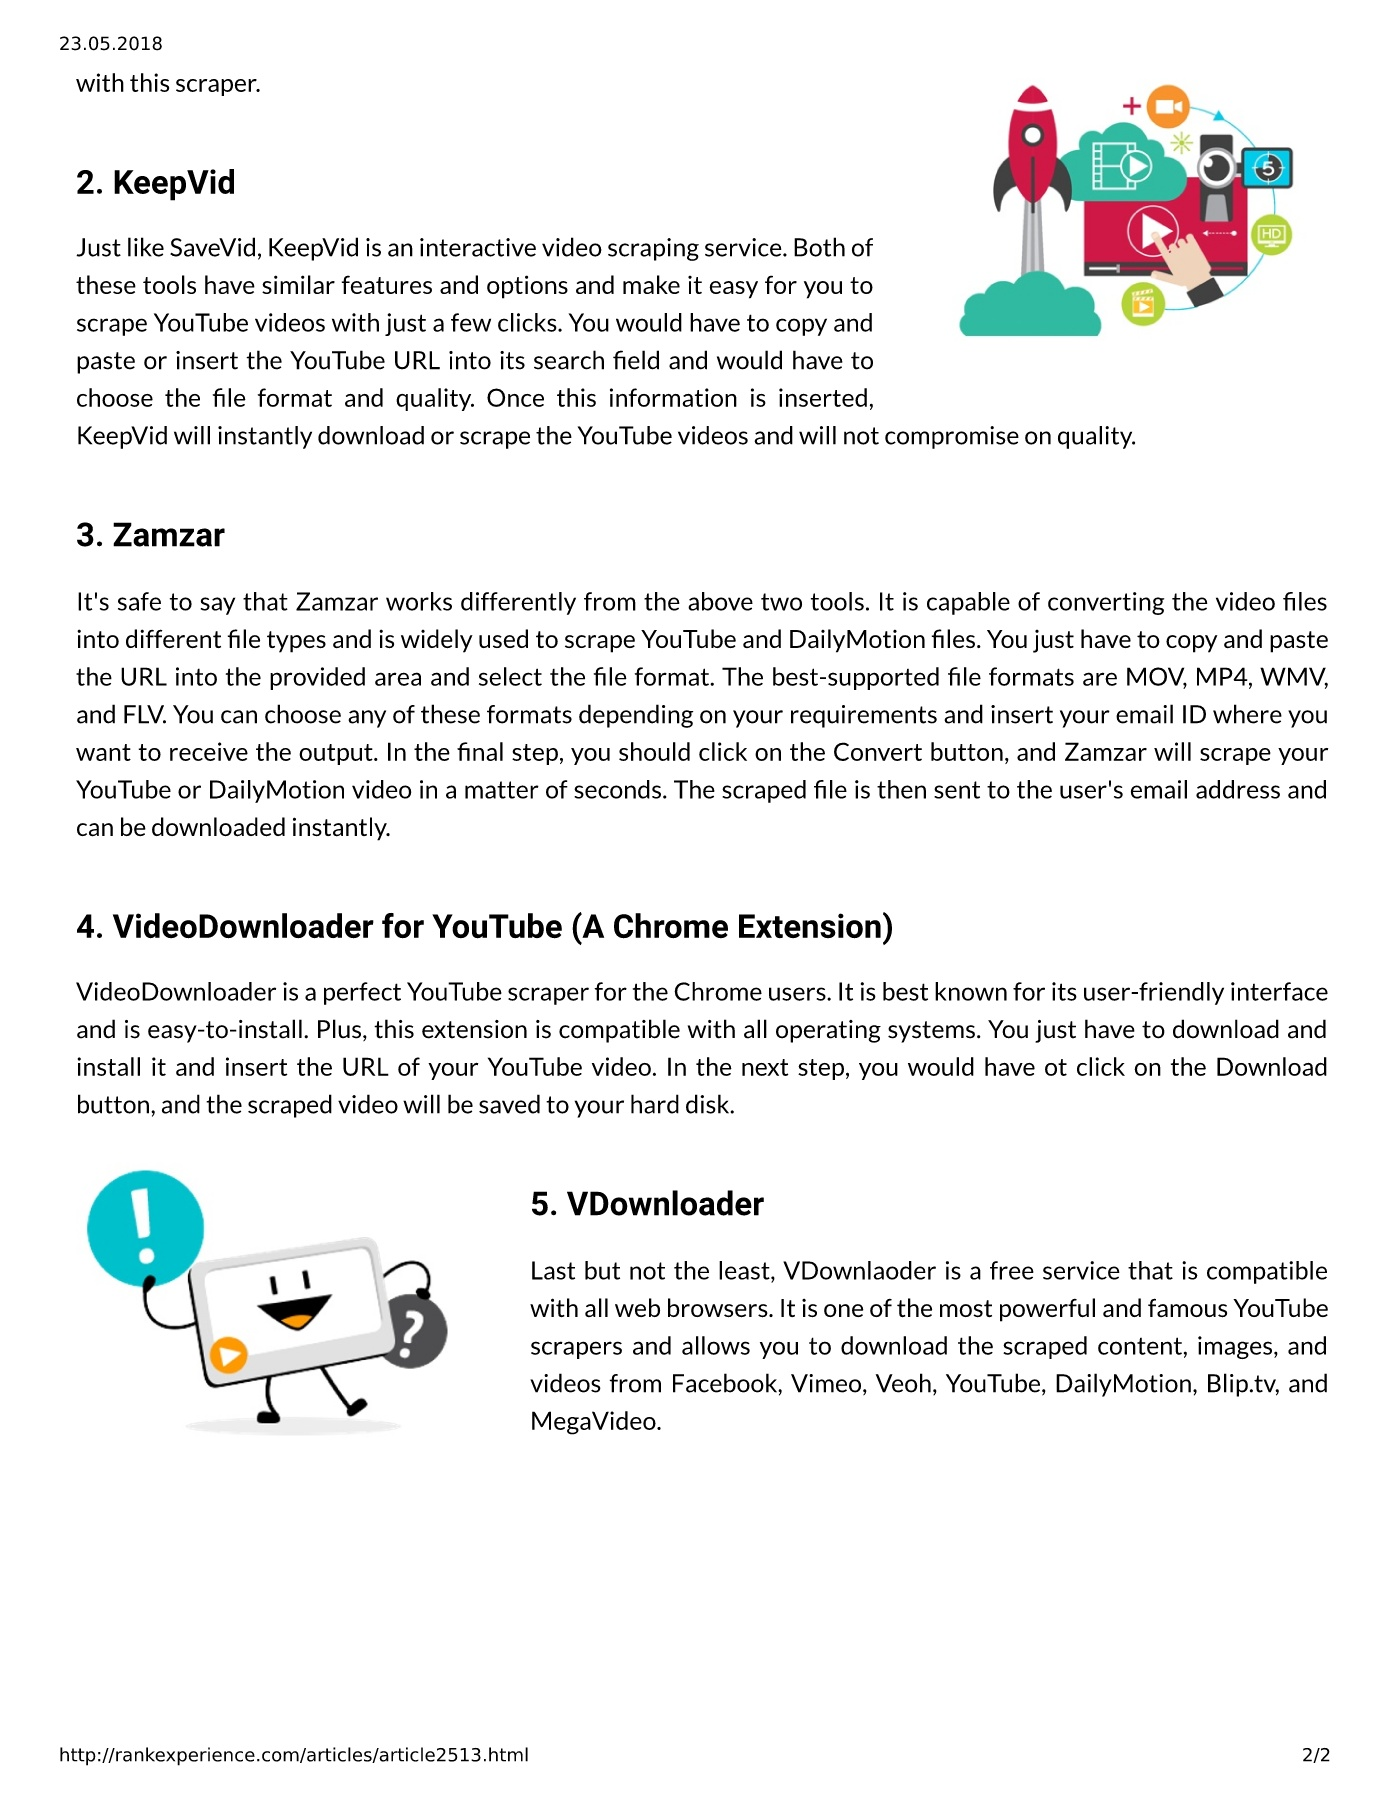 Semalt Provides The Different Ways To Scrape Youtube Videos Pages 1